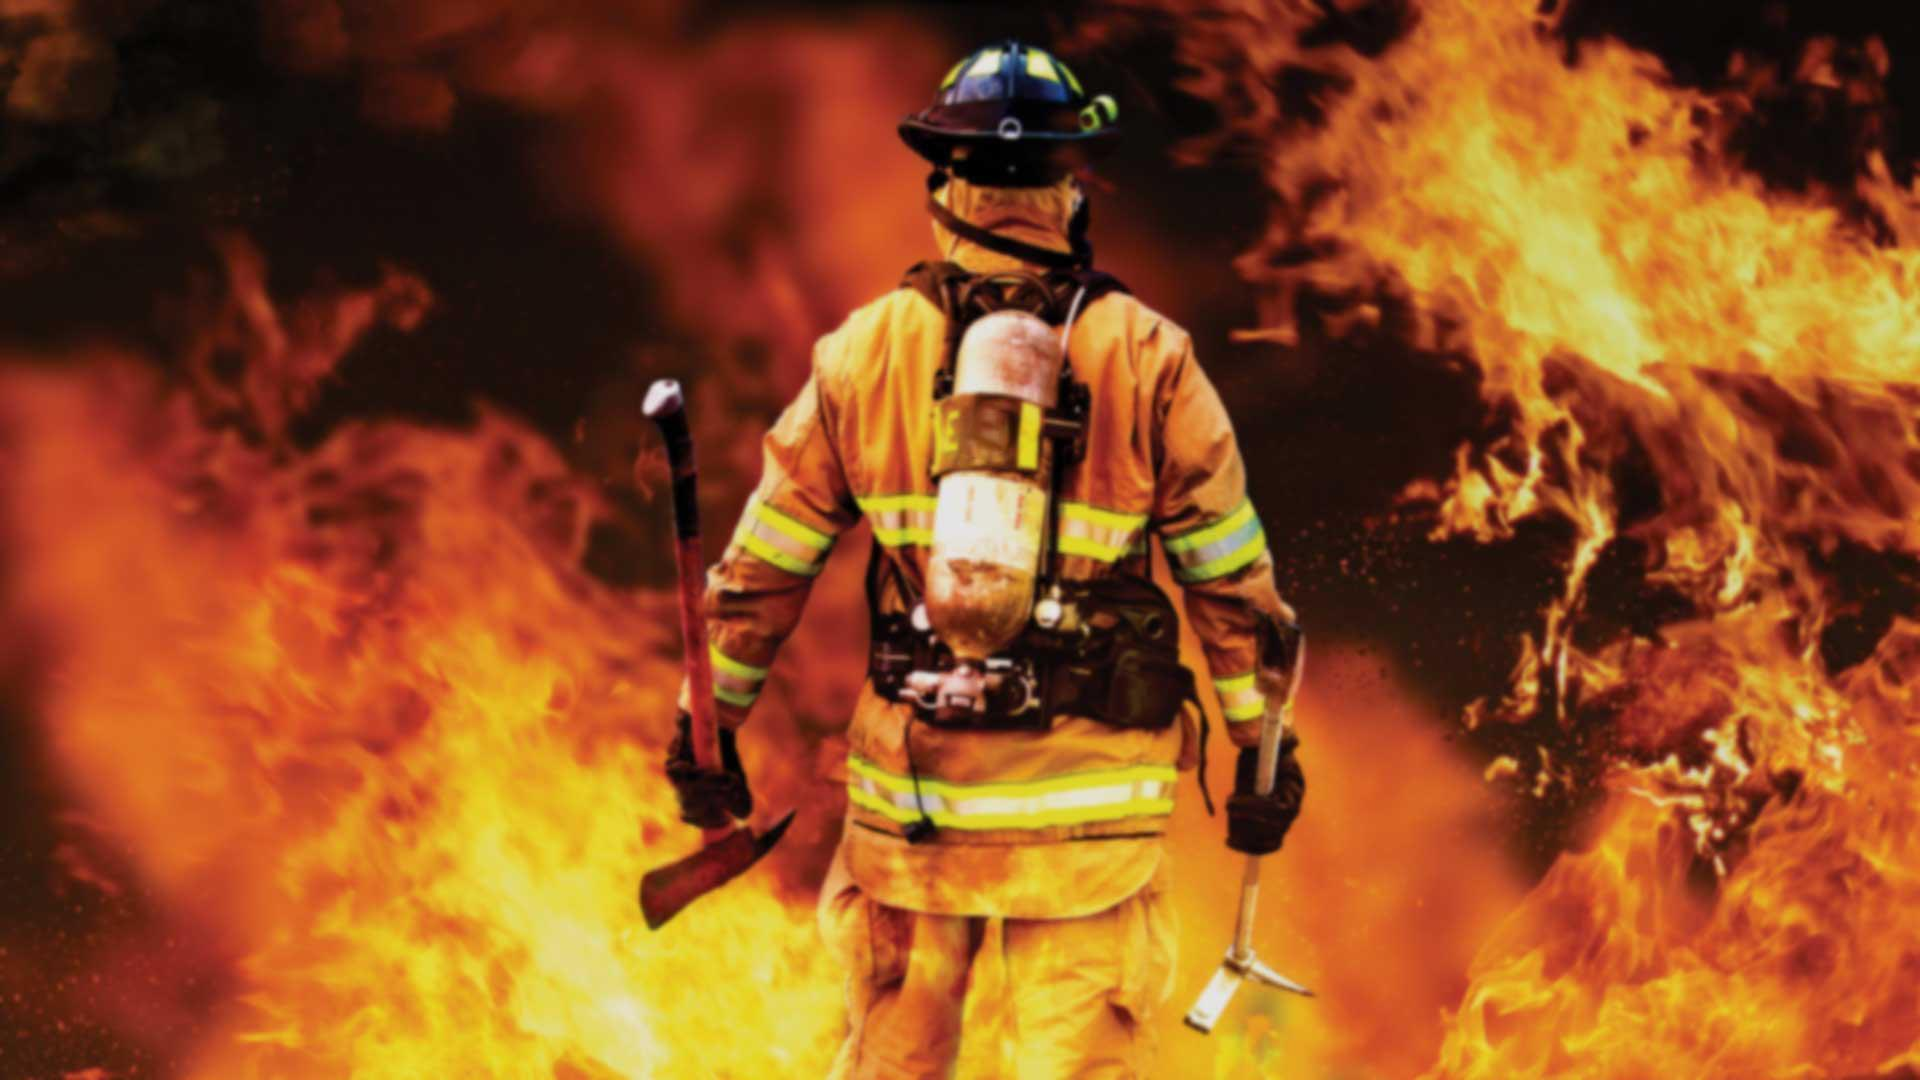 Firefighters Live wallpapers for Android   APK Download 1920x1080